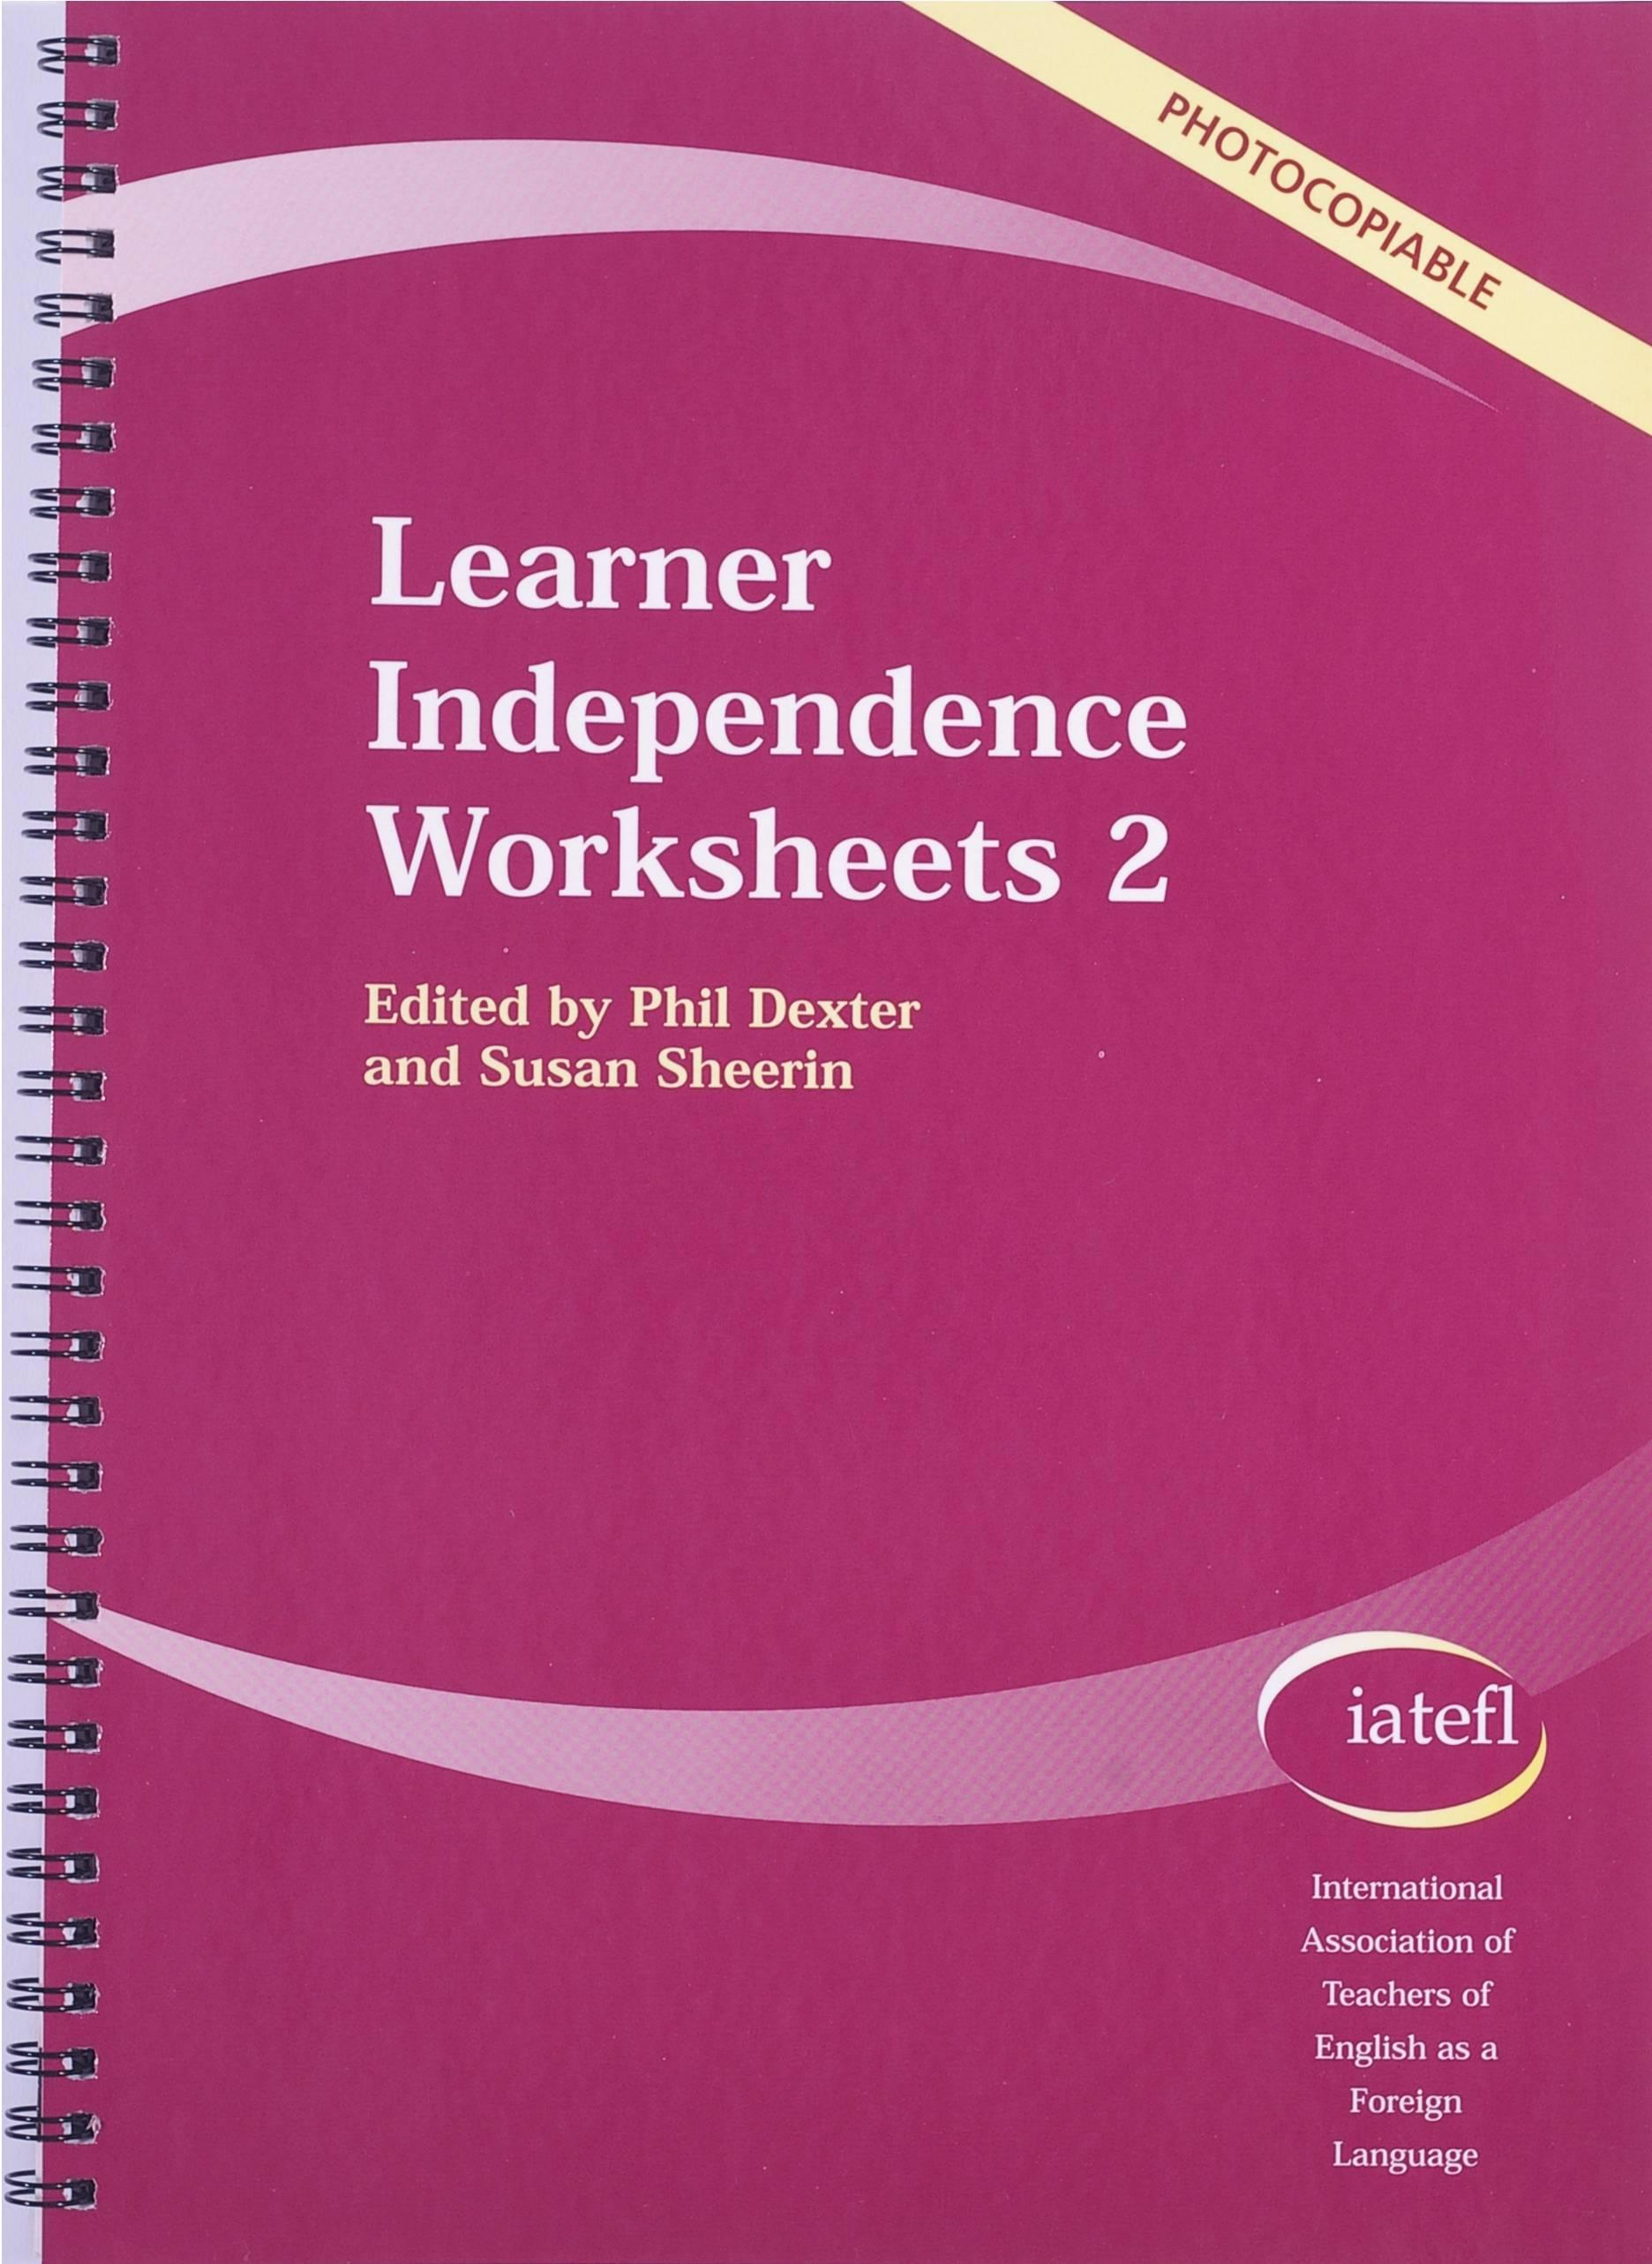 Picture of Learner Independence Worksheets 2